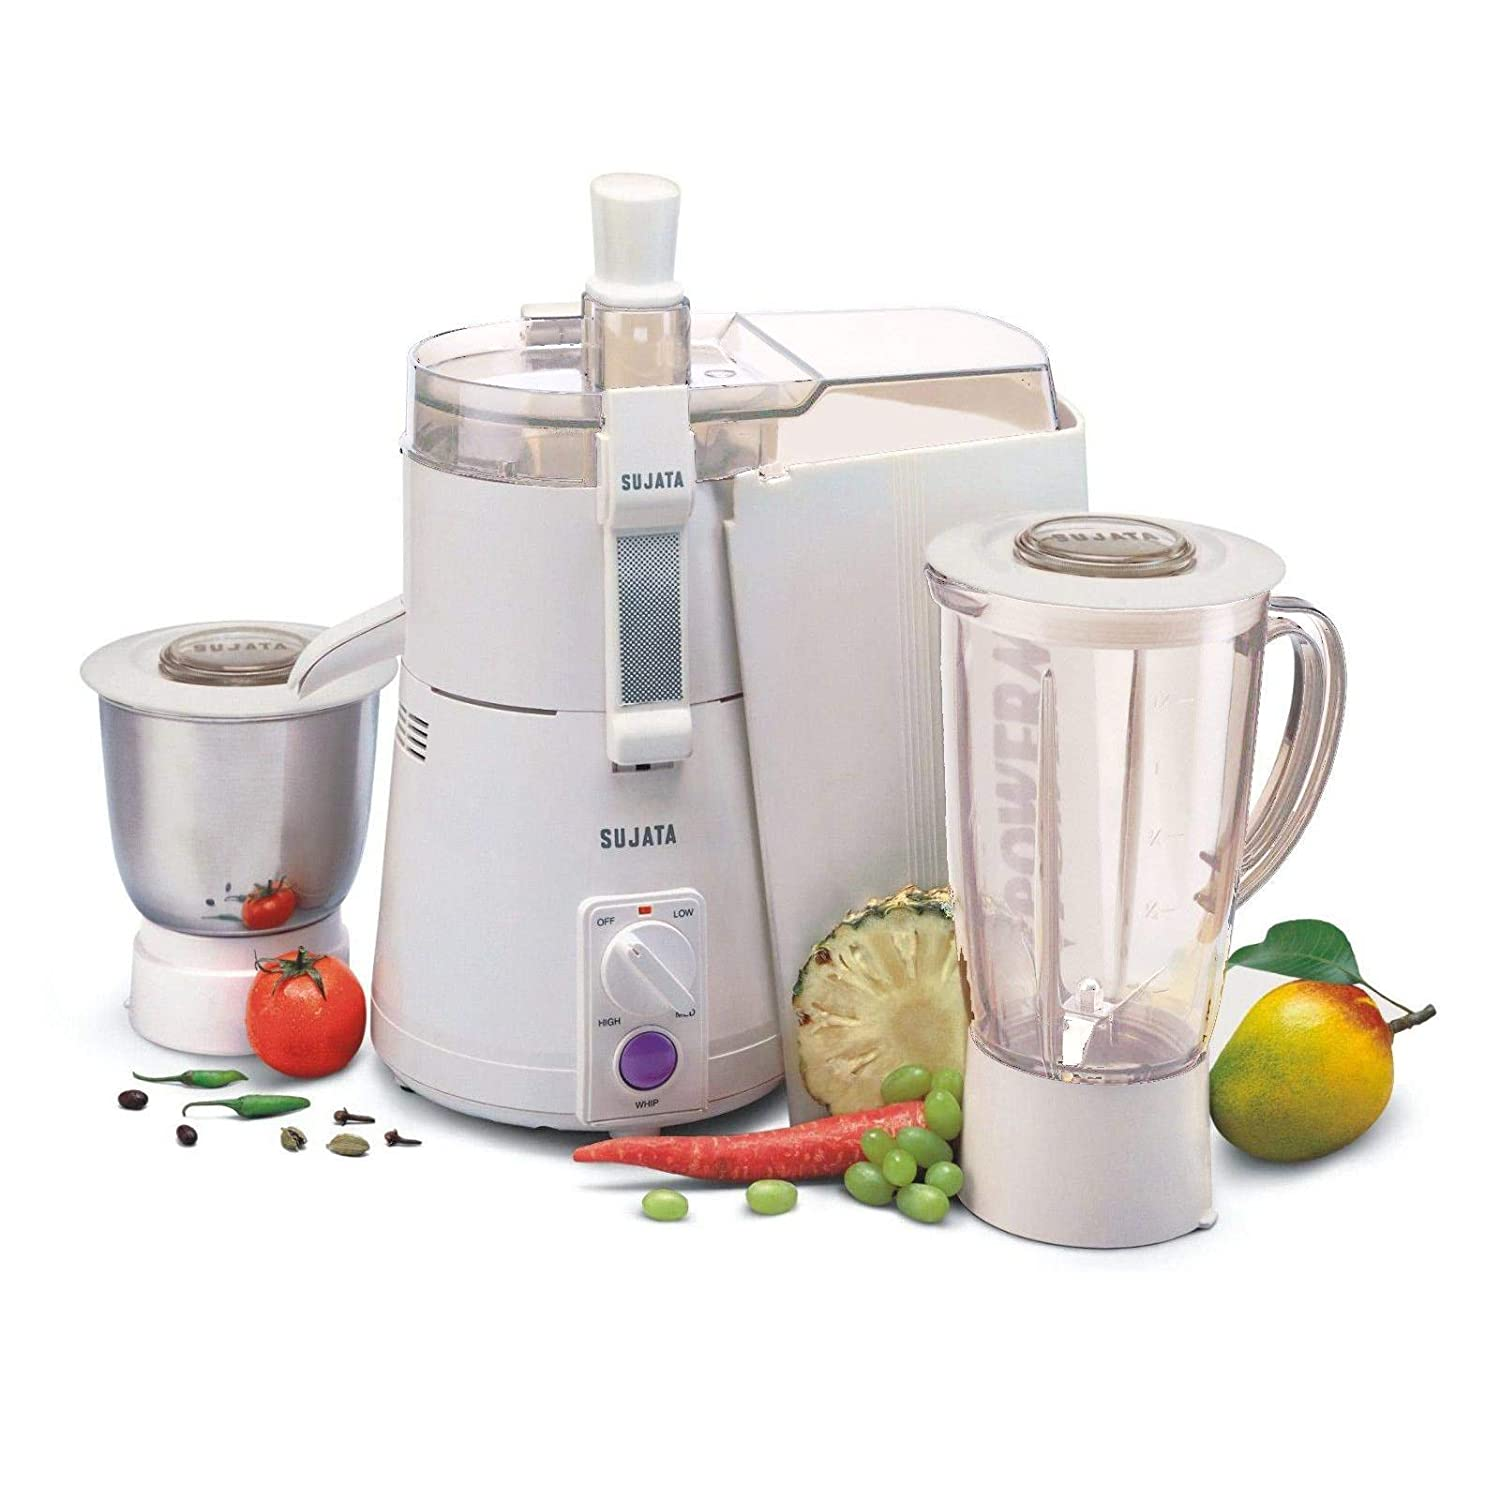 Sujata Powermatic Plus + CH 900-Watt Juicer Mixer Grinder